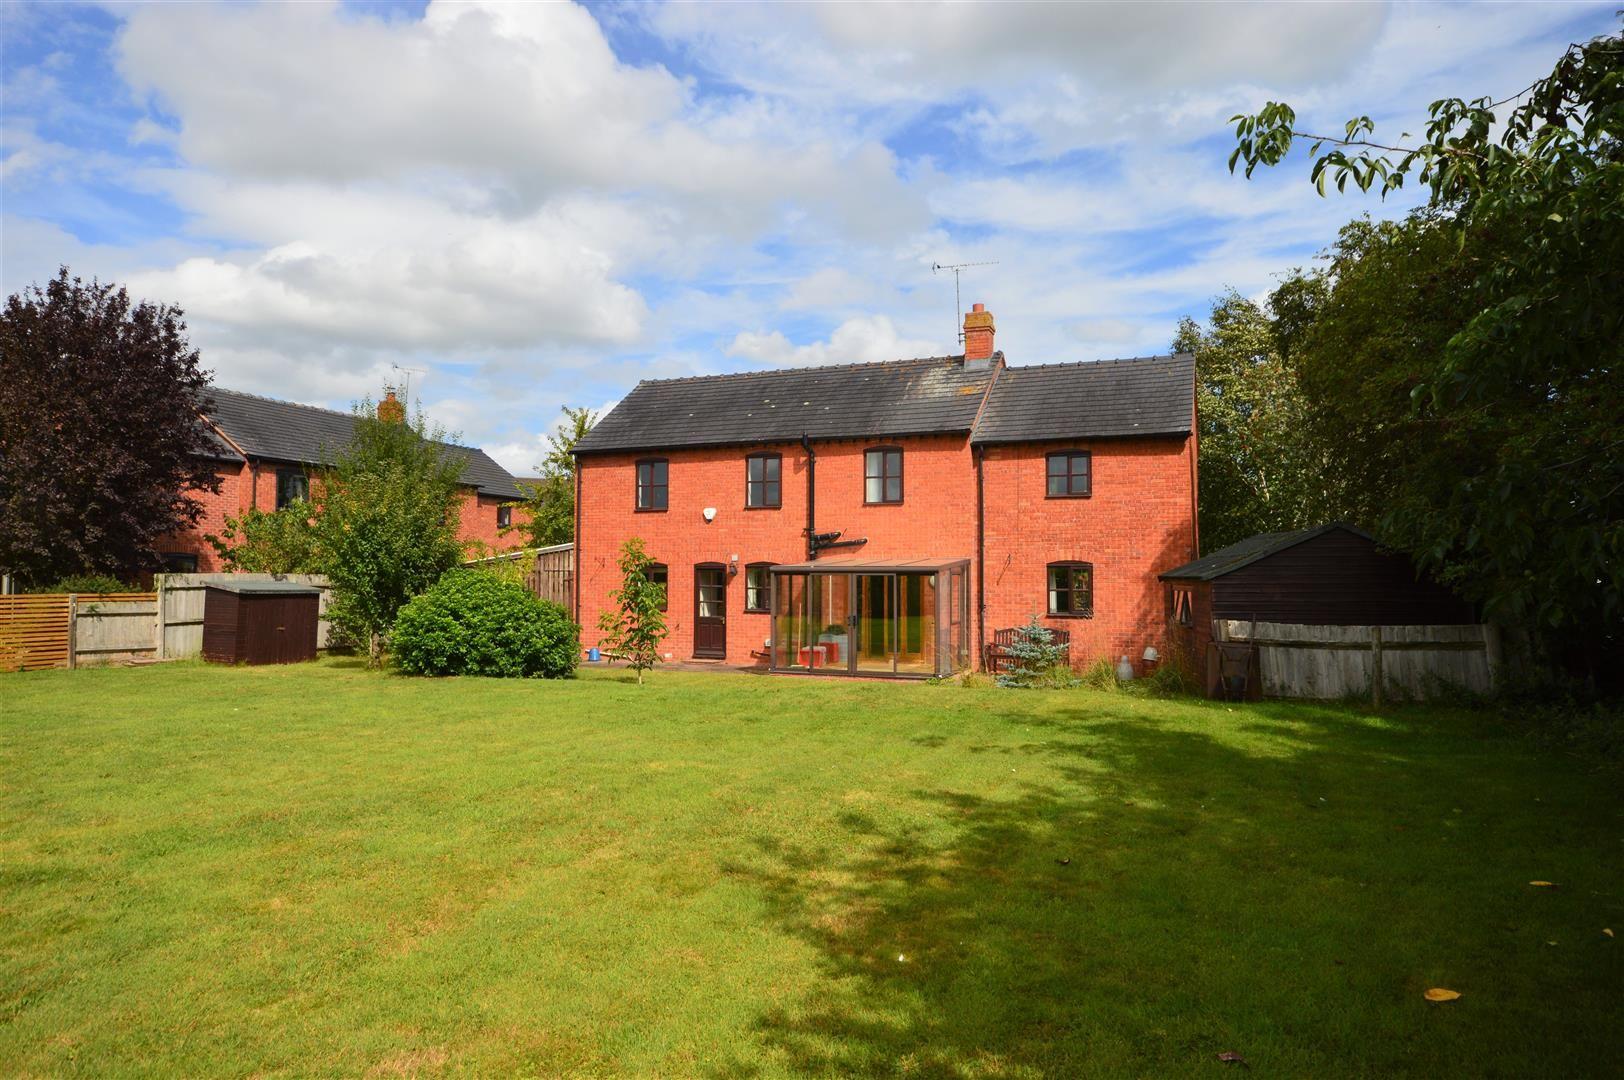 4 bed detached for sale in Bodenham  - Property Image 11